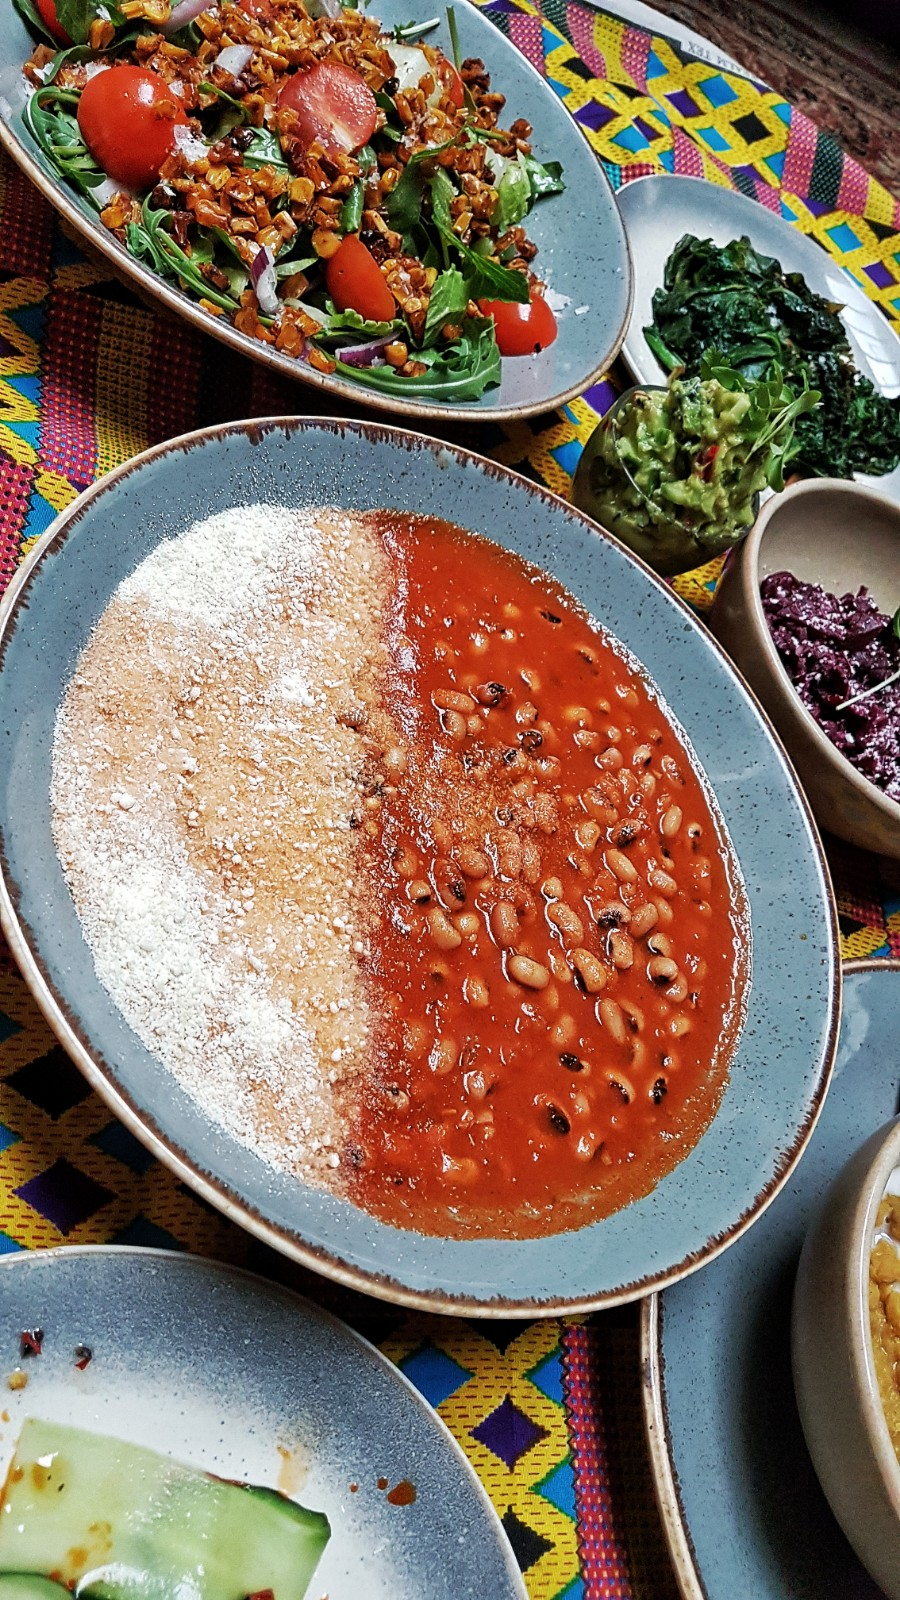 Zoe's Ghana Kitchen Supper Club at The King & Co